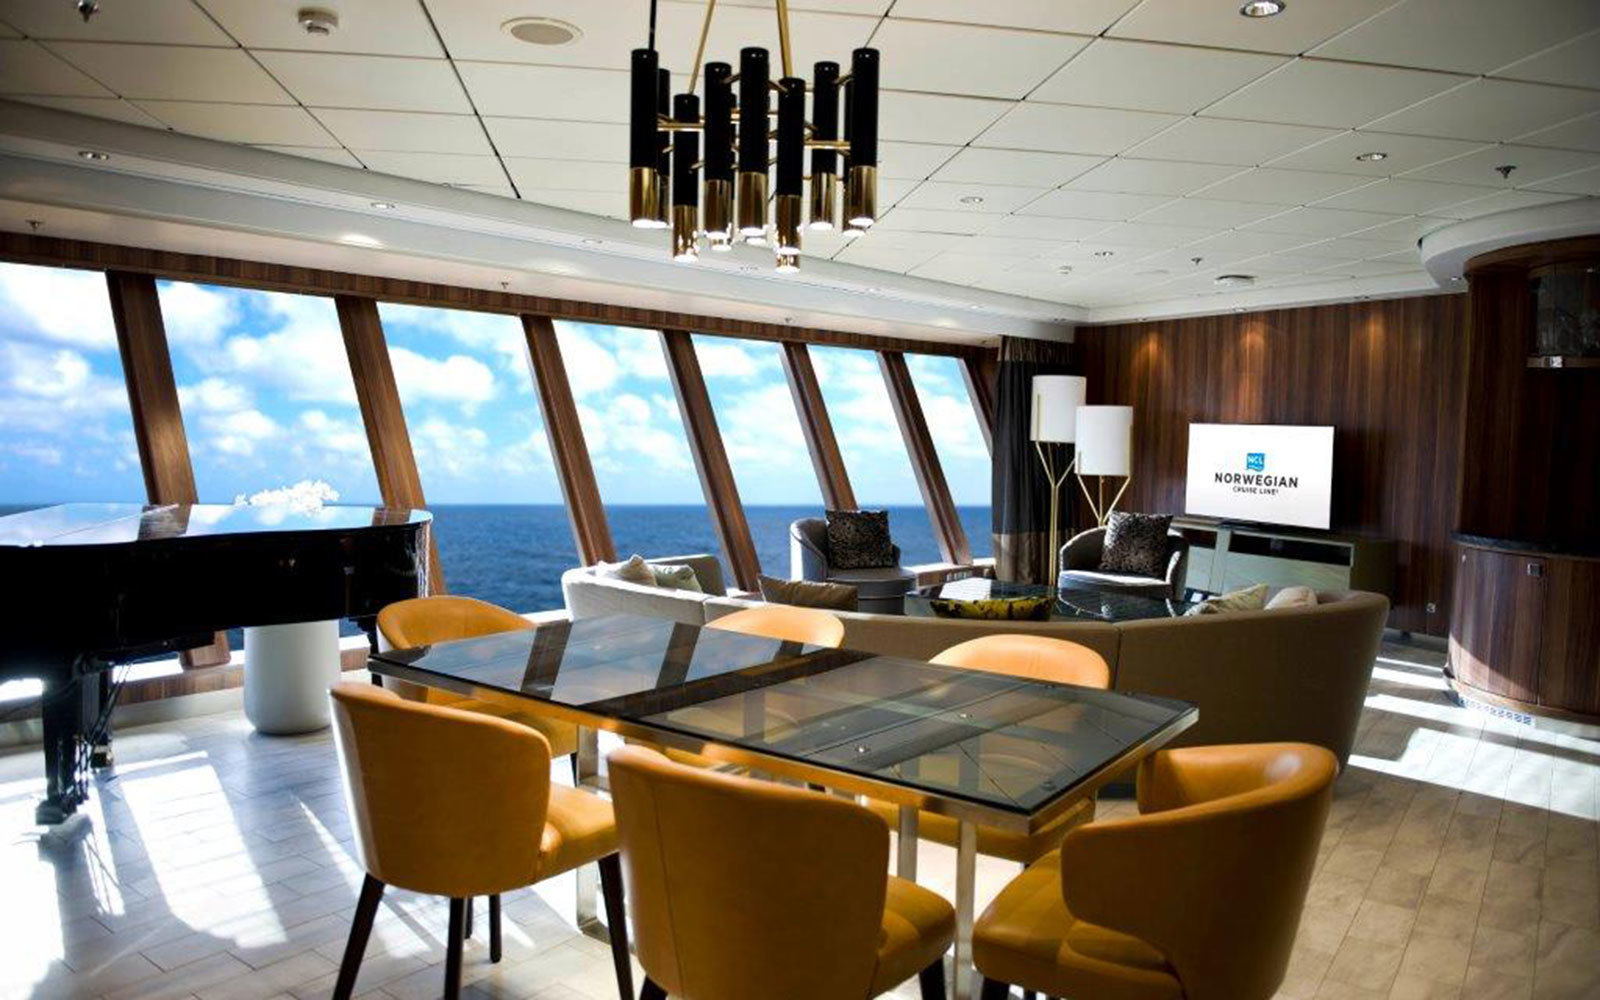 Norwegian Cruise Line suite